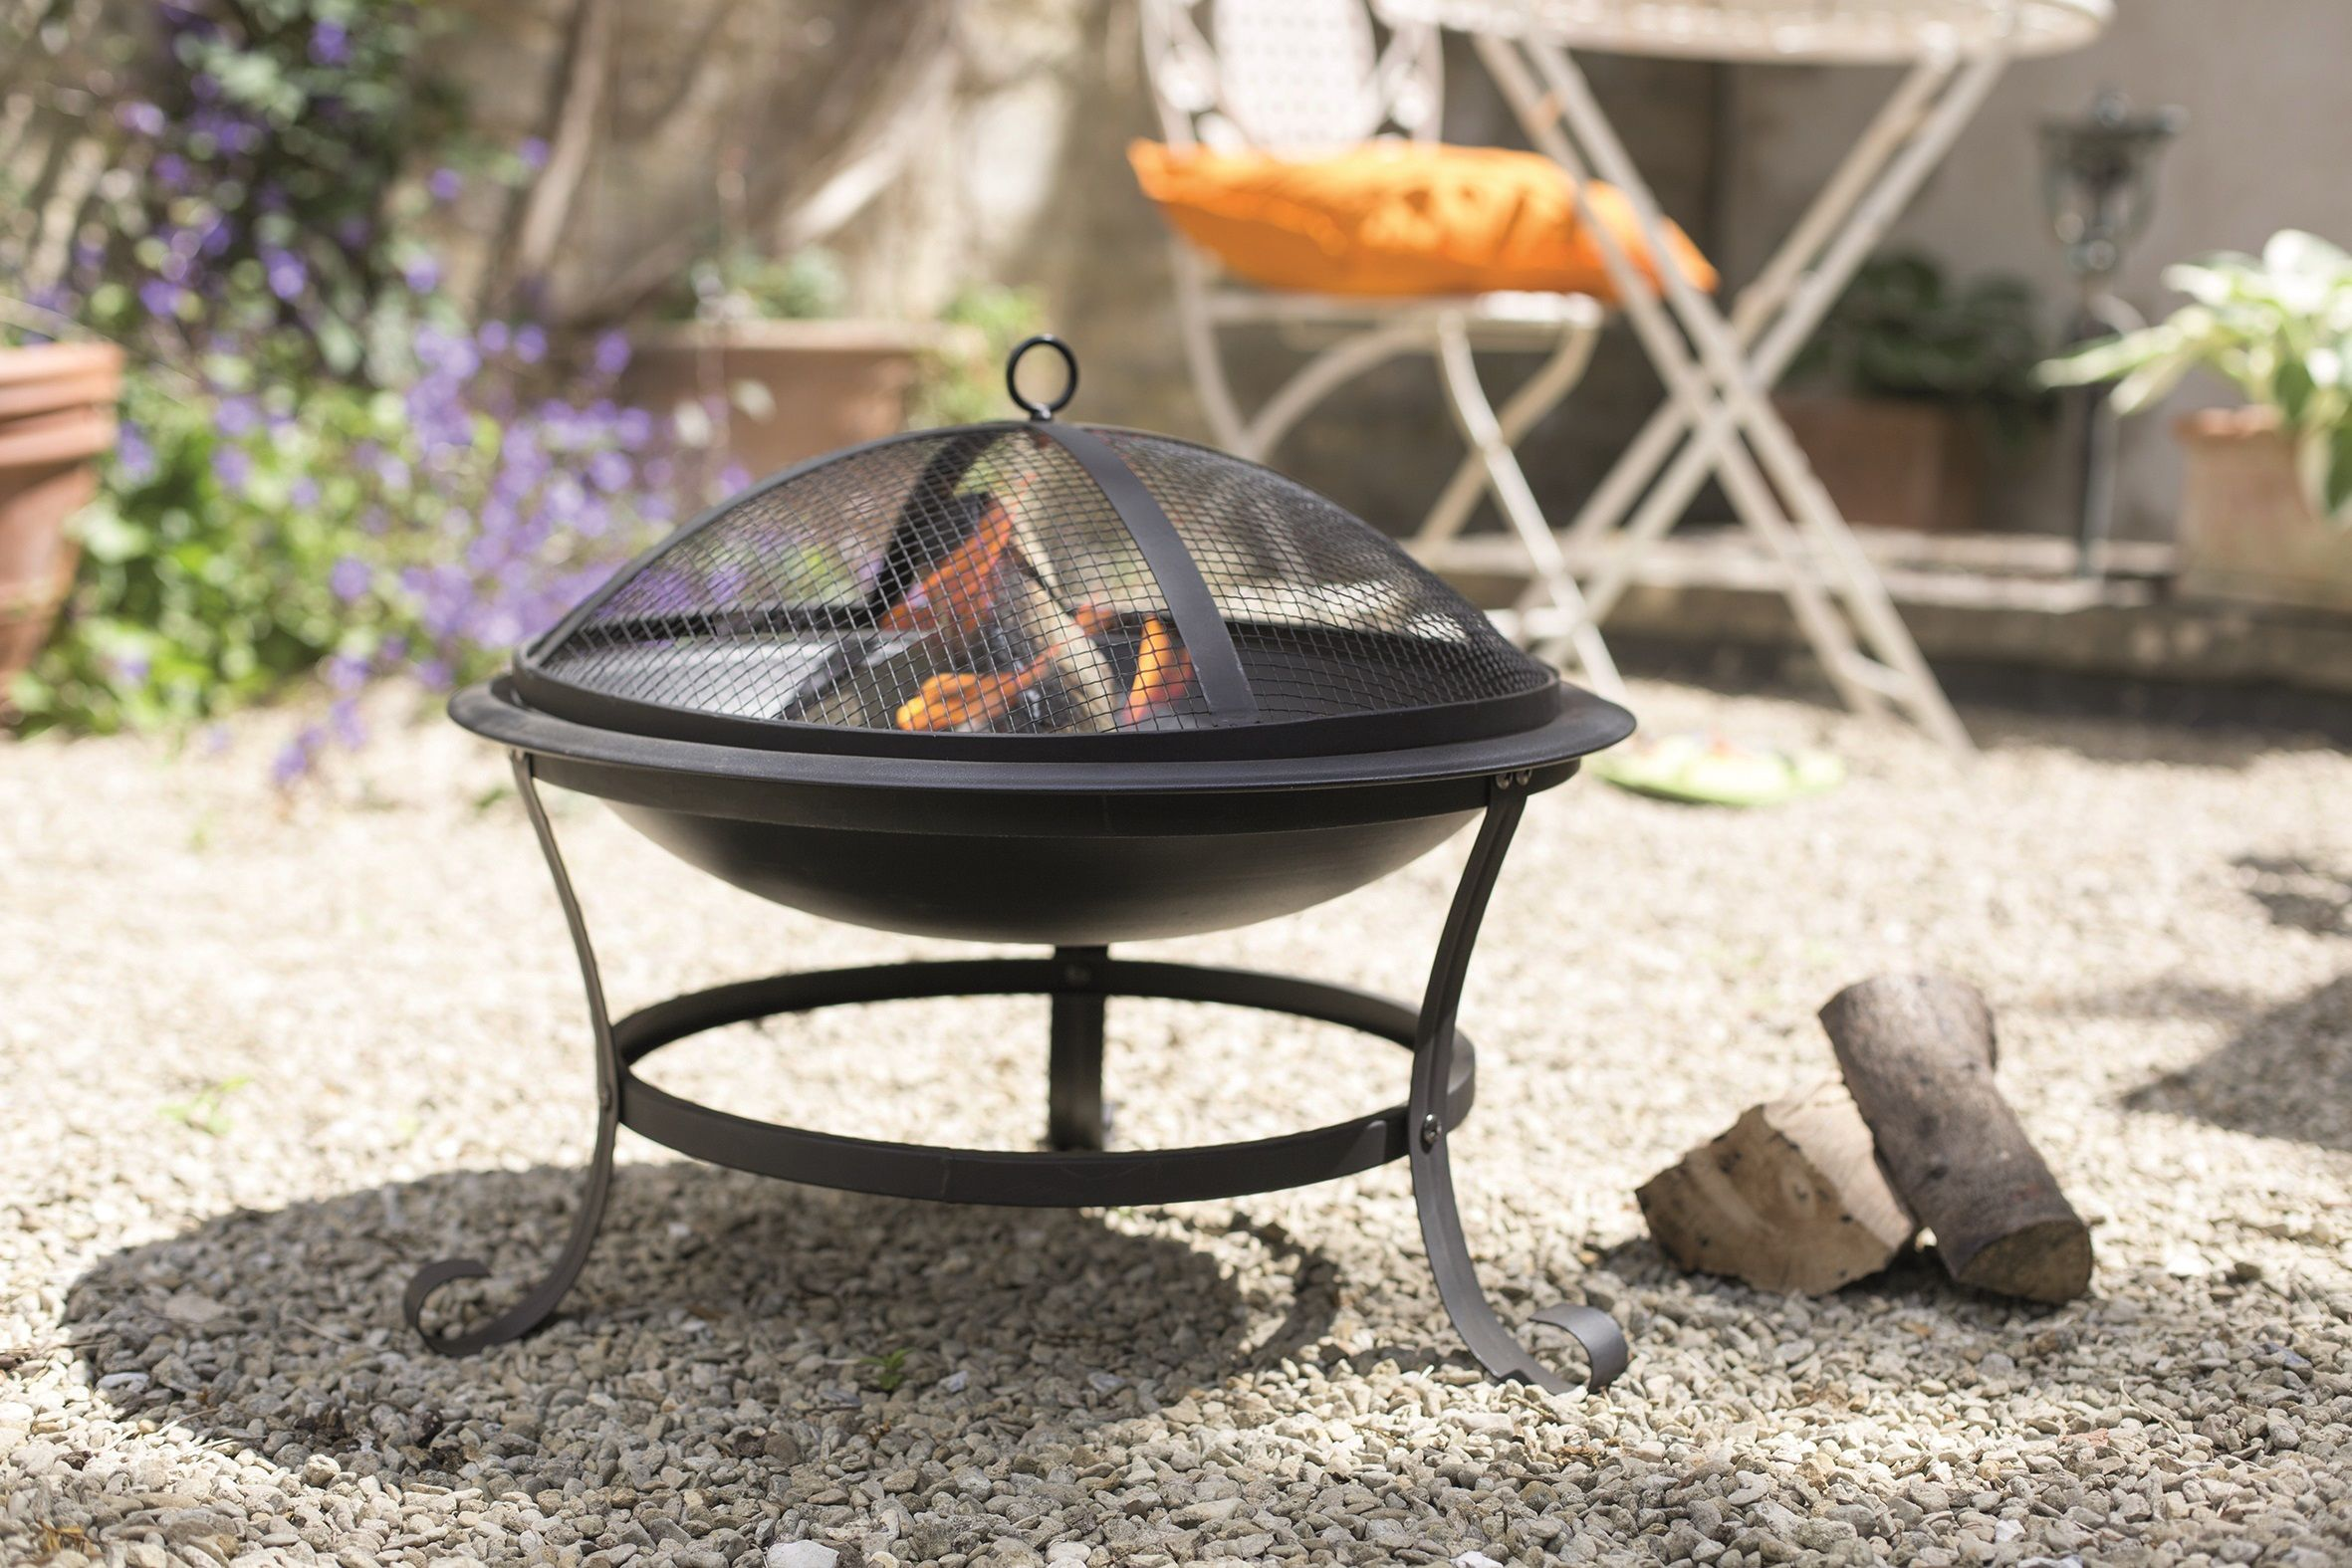 Lidl launches must-have garden fire pit for just £25